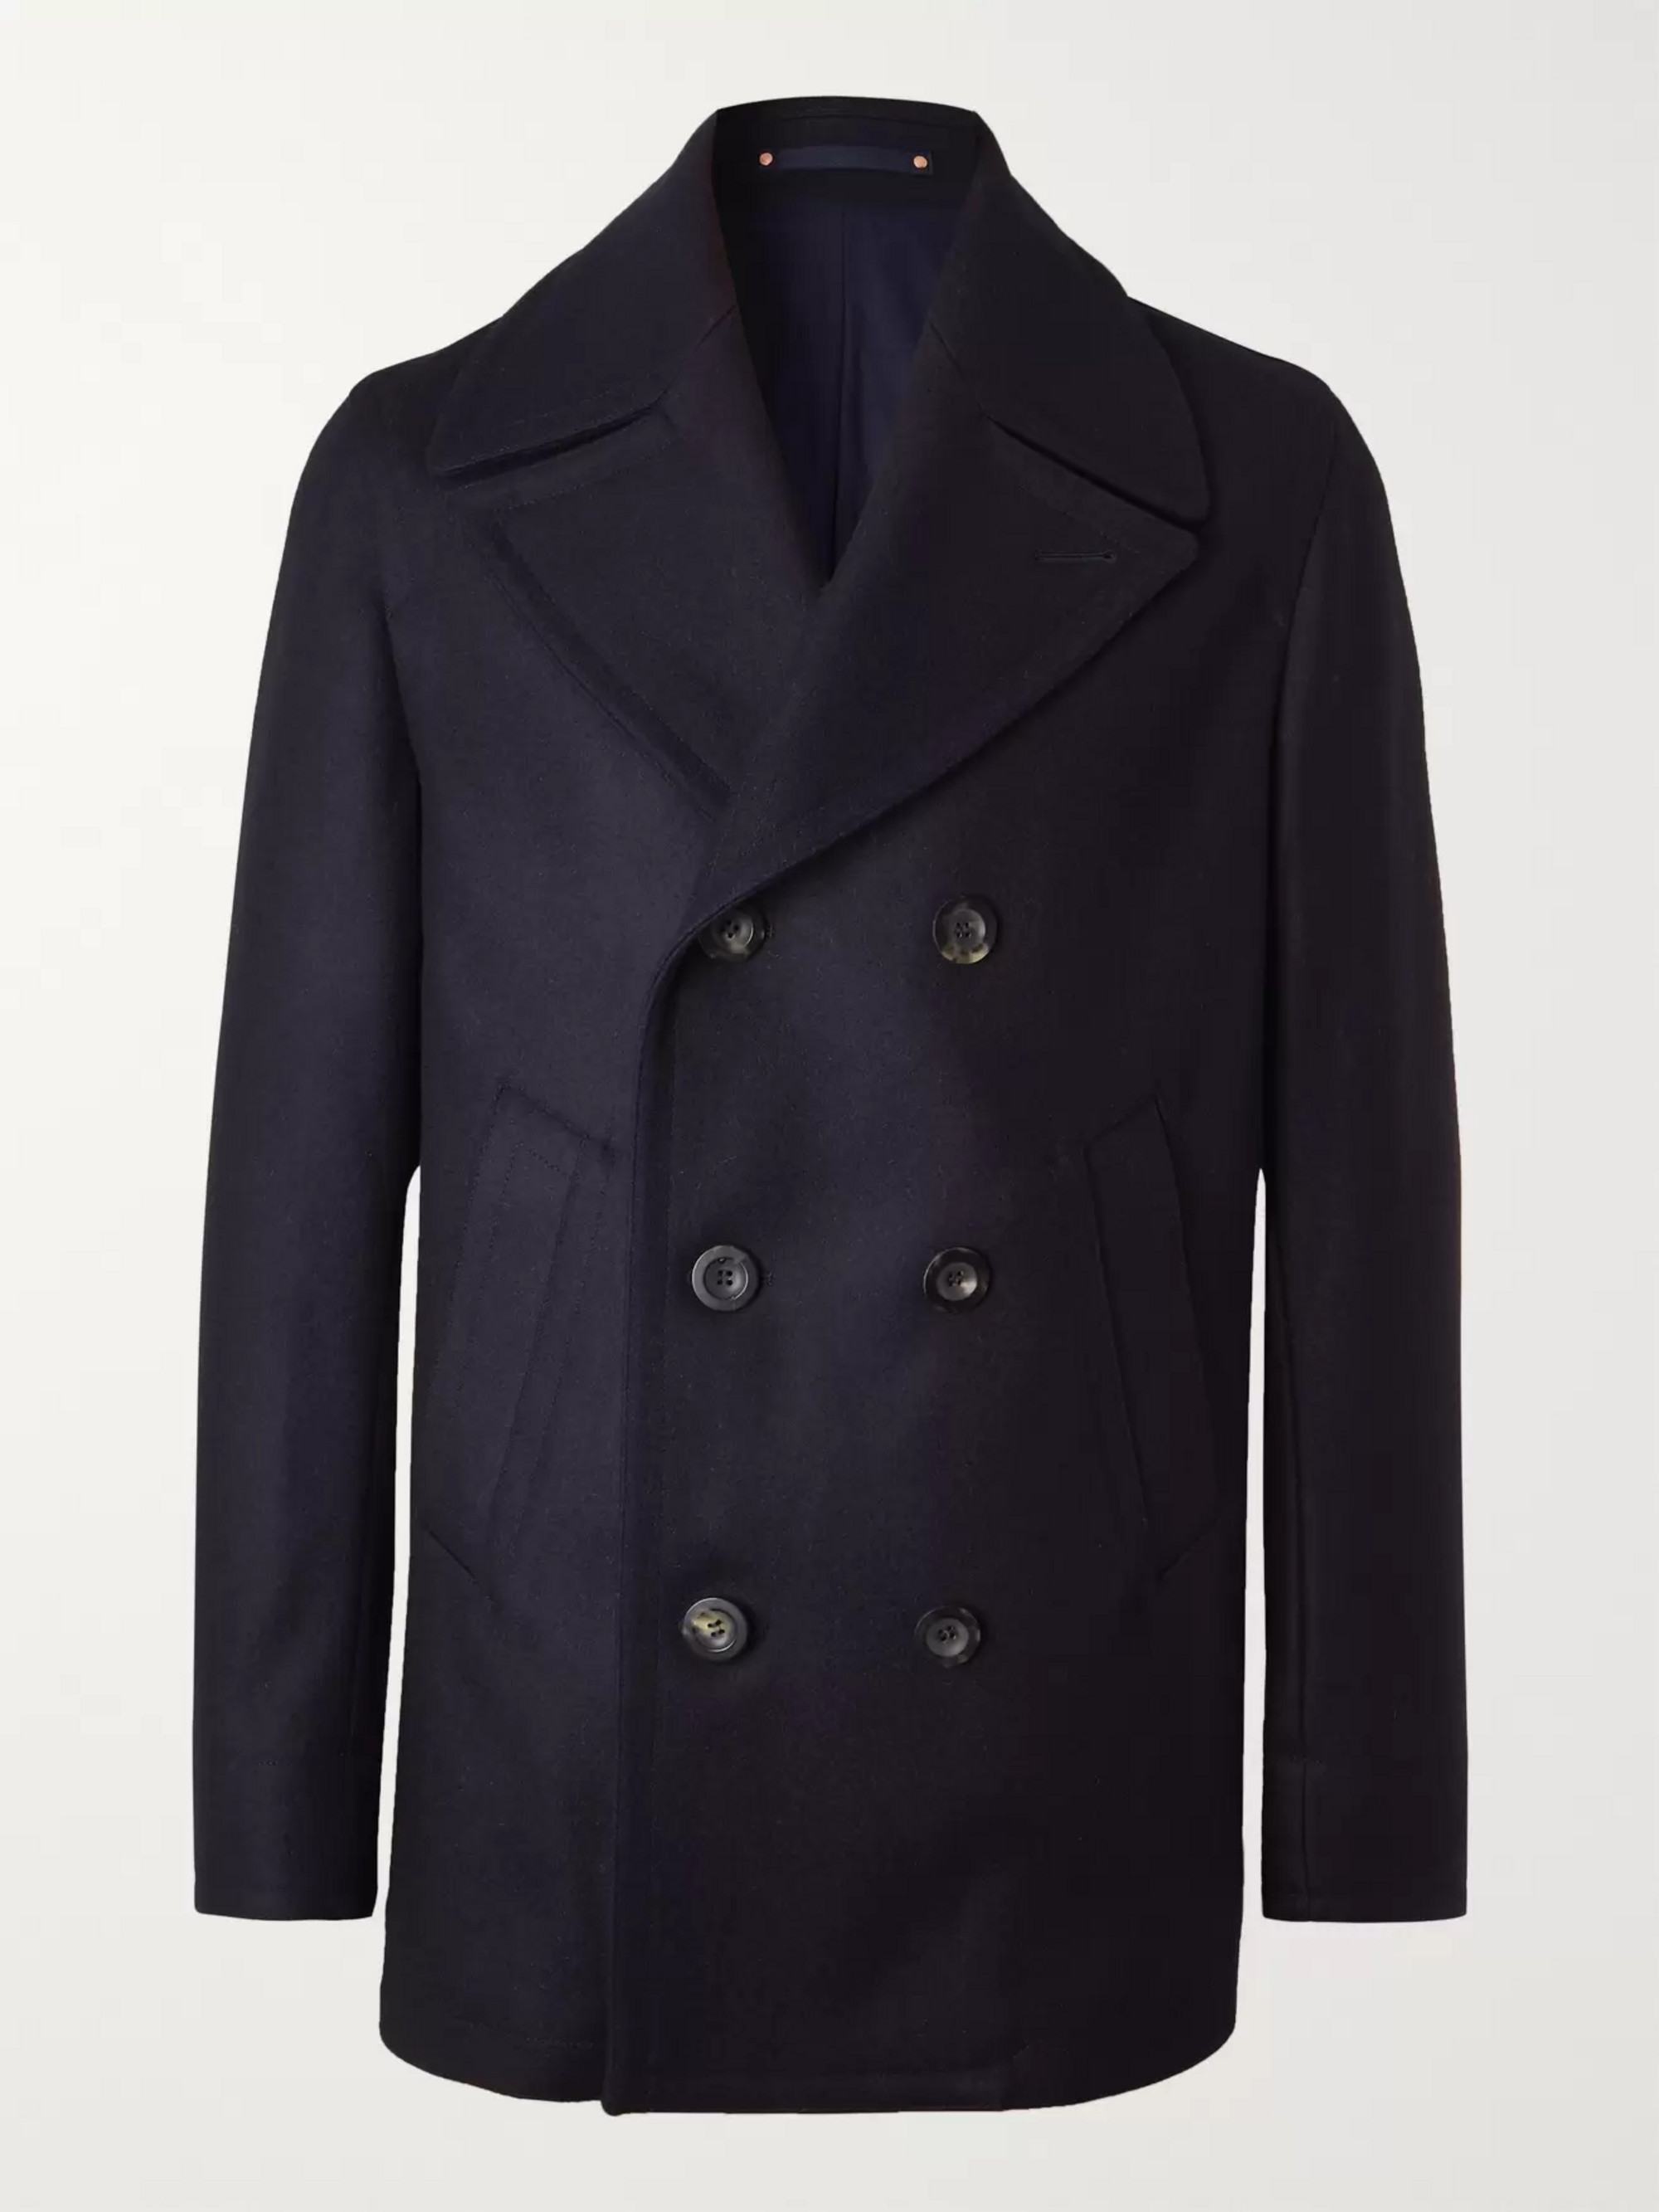 Private White V.C. Melton Merino Wool Peacoat